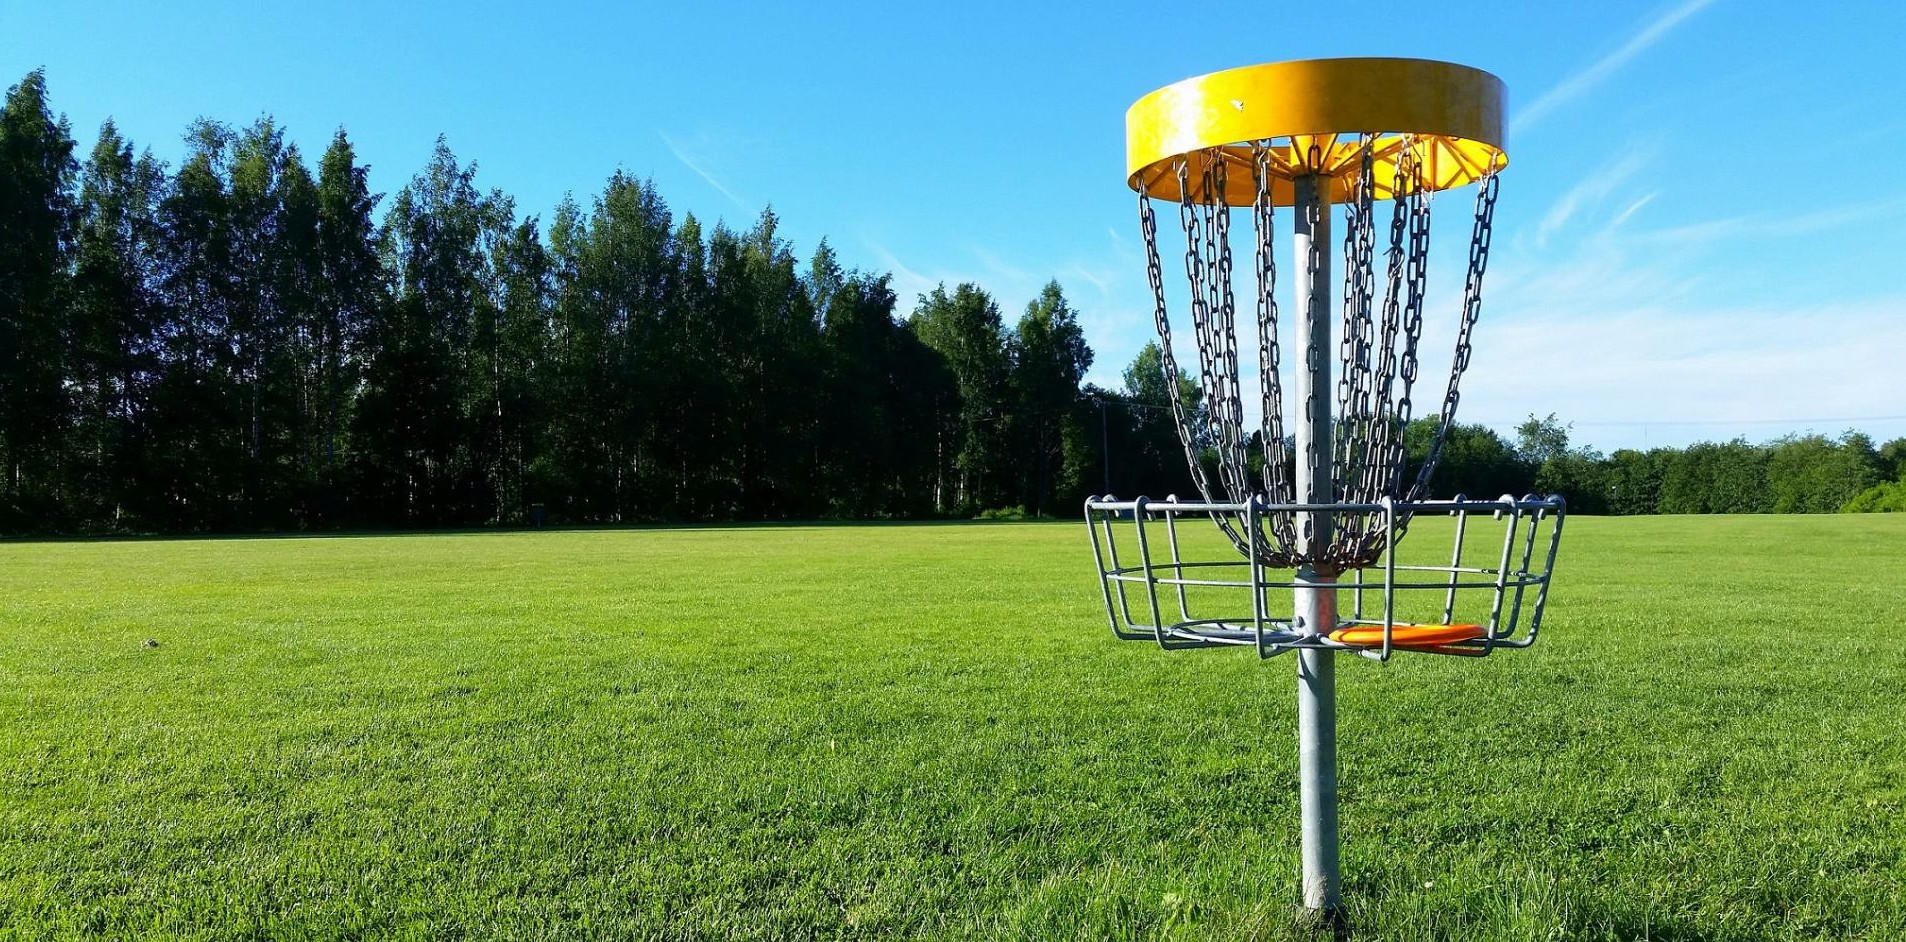 St Jude Disc Golf